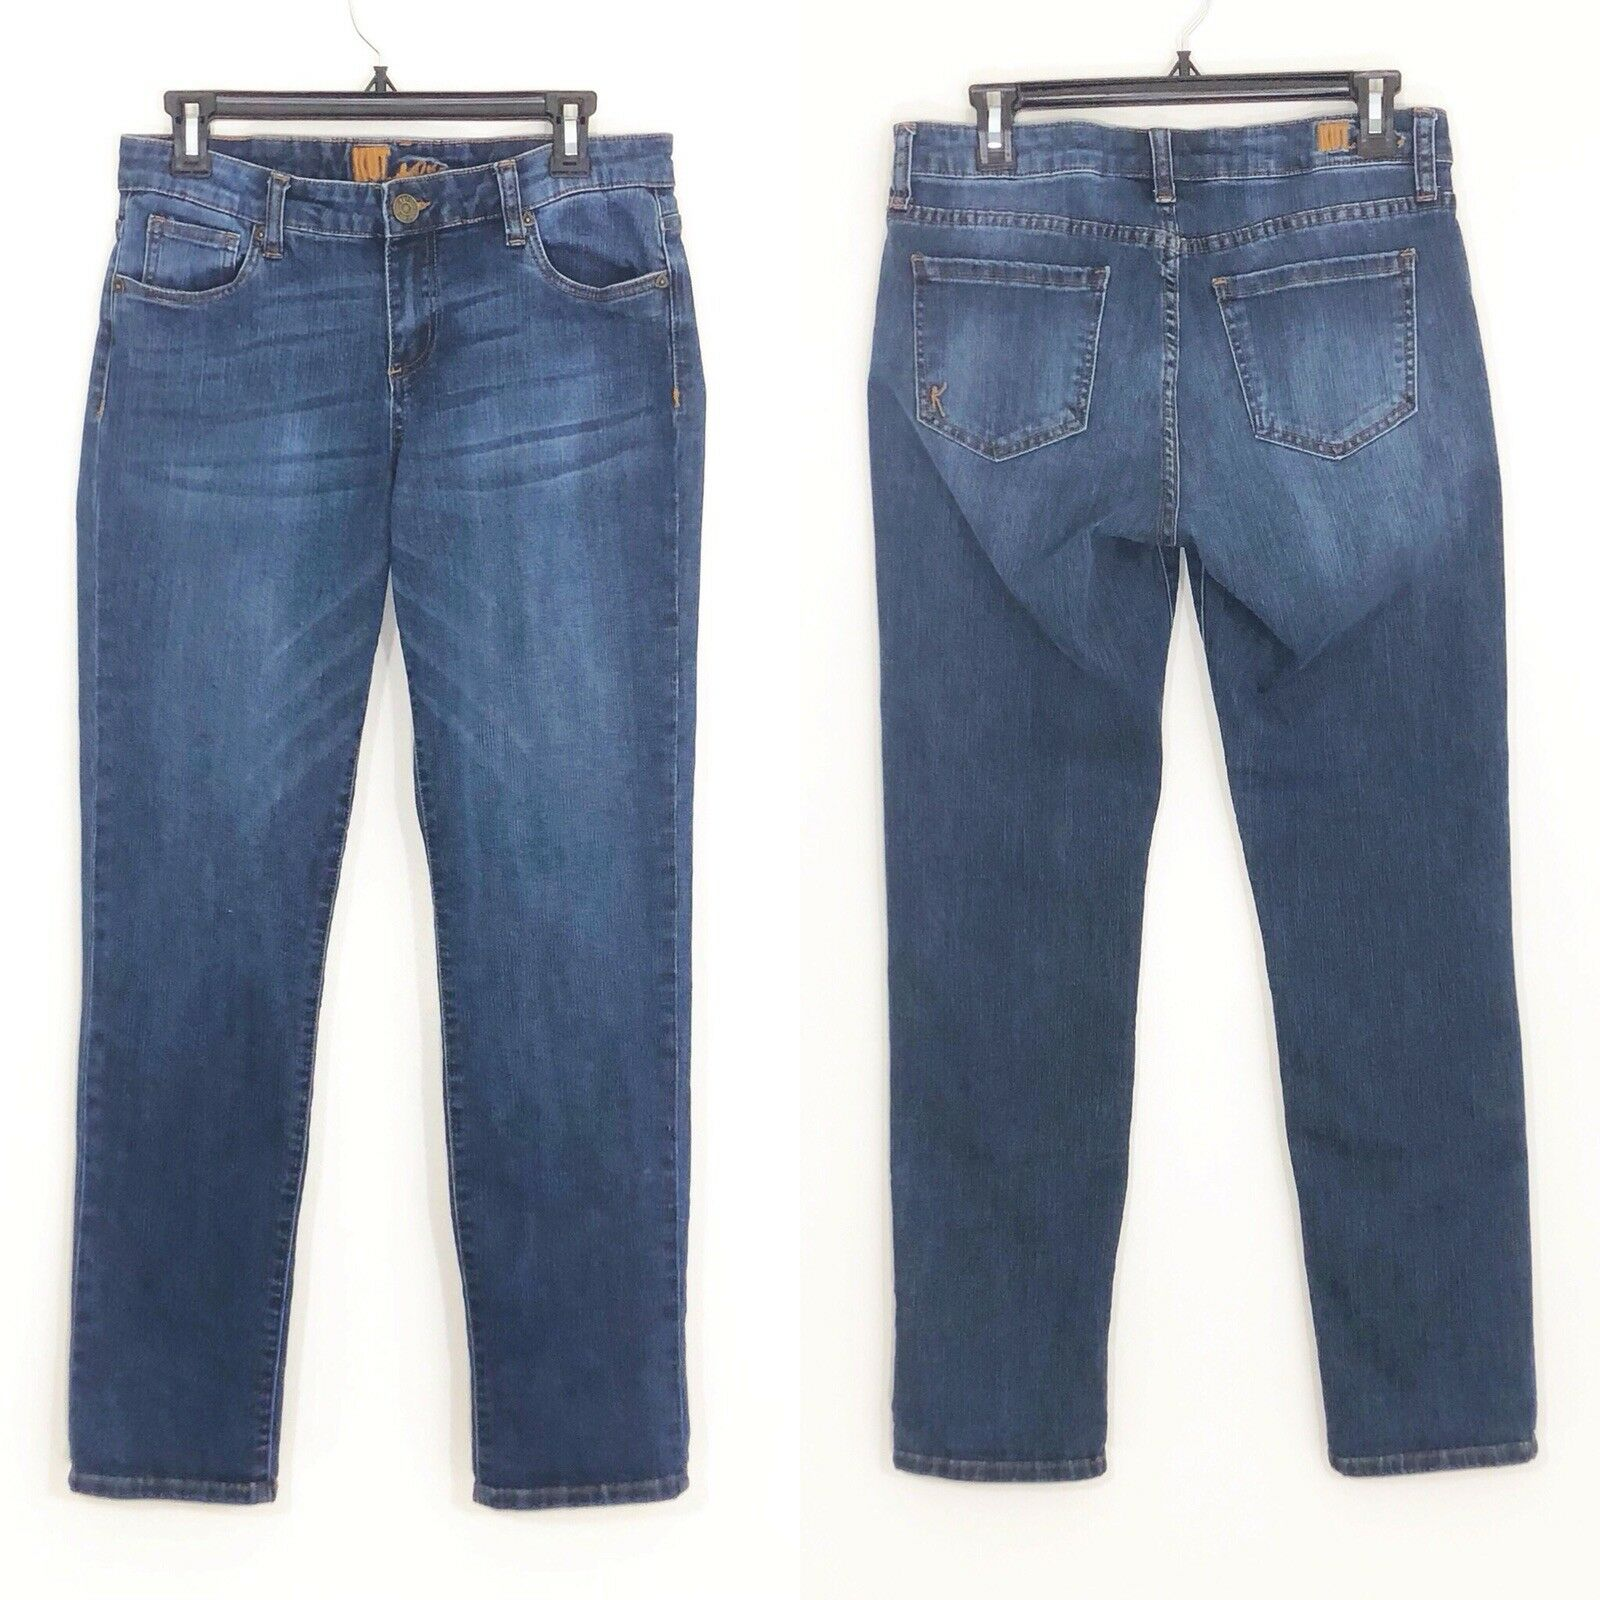 Kut from the Kloth Mid-rise bluee Straight Jeans 8